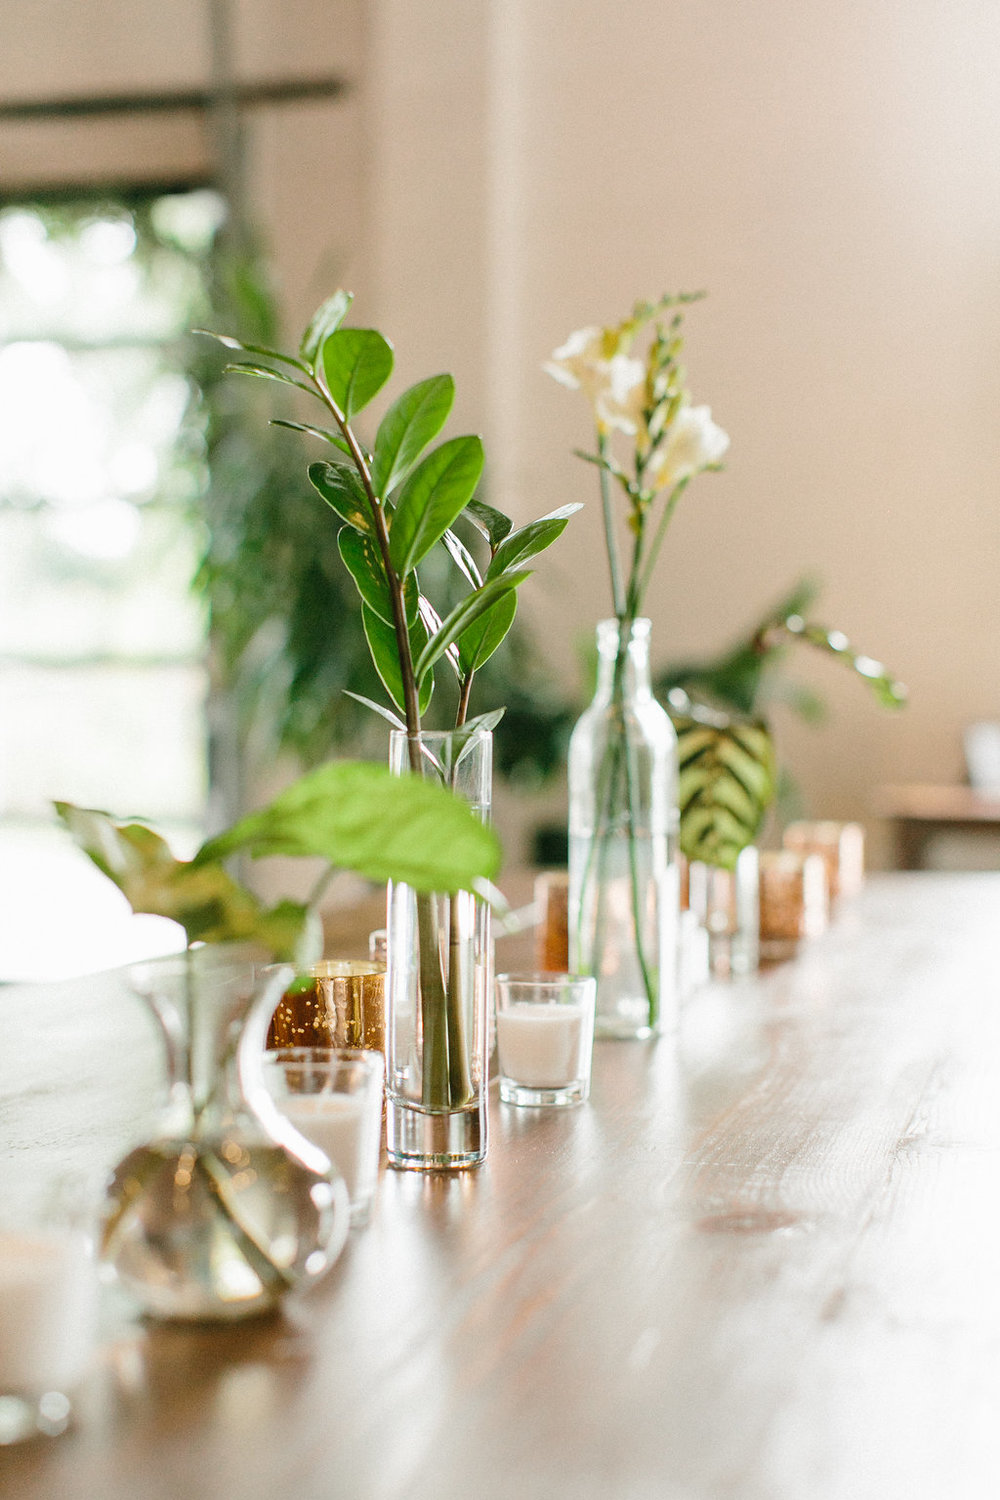 Carly Milbrath Photography | Justin and Jacob | PAIKKA Minnesota Wedding Venue | Same sex wedding with two grooms | bud vases with greenery on harvest table with mercury votives